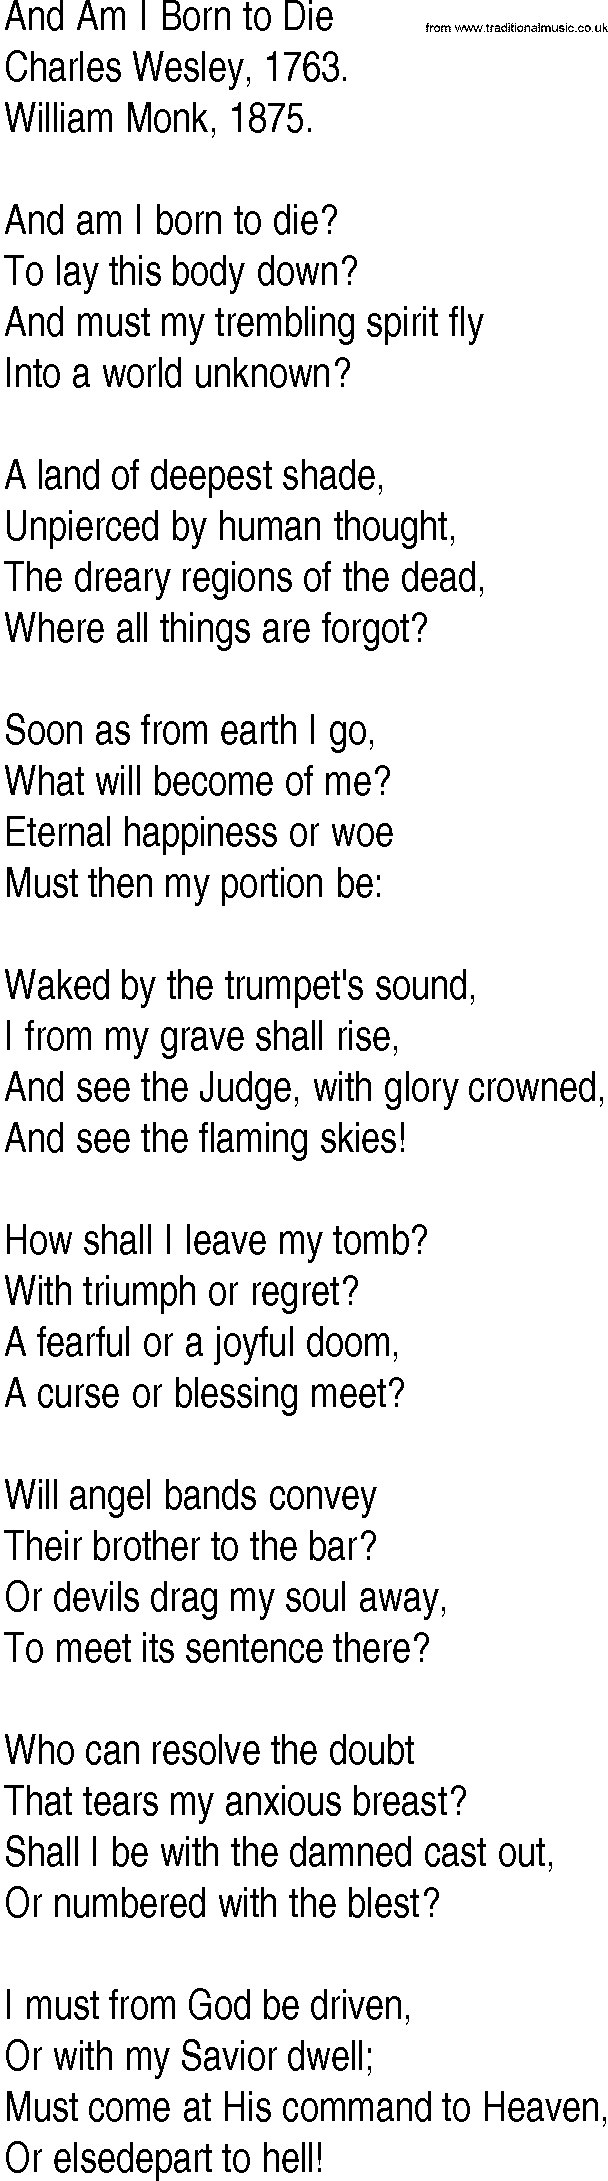 Hymn and Gospel Song Lyrics for And Am I Born to Die by ...